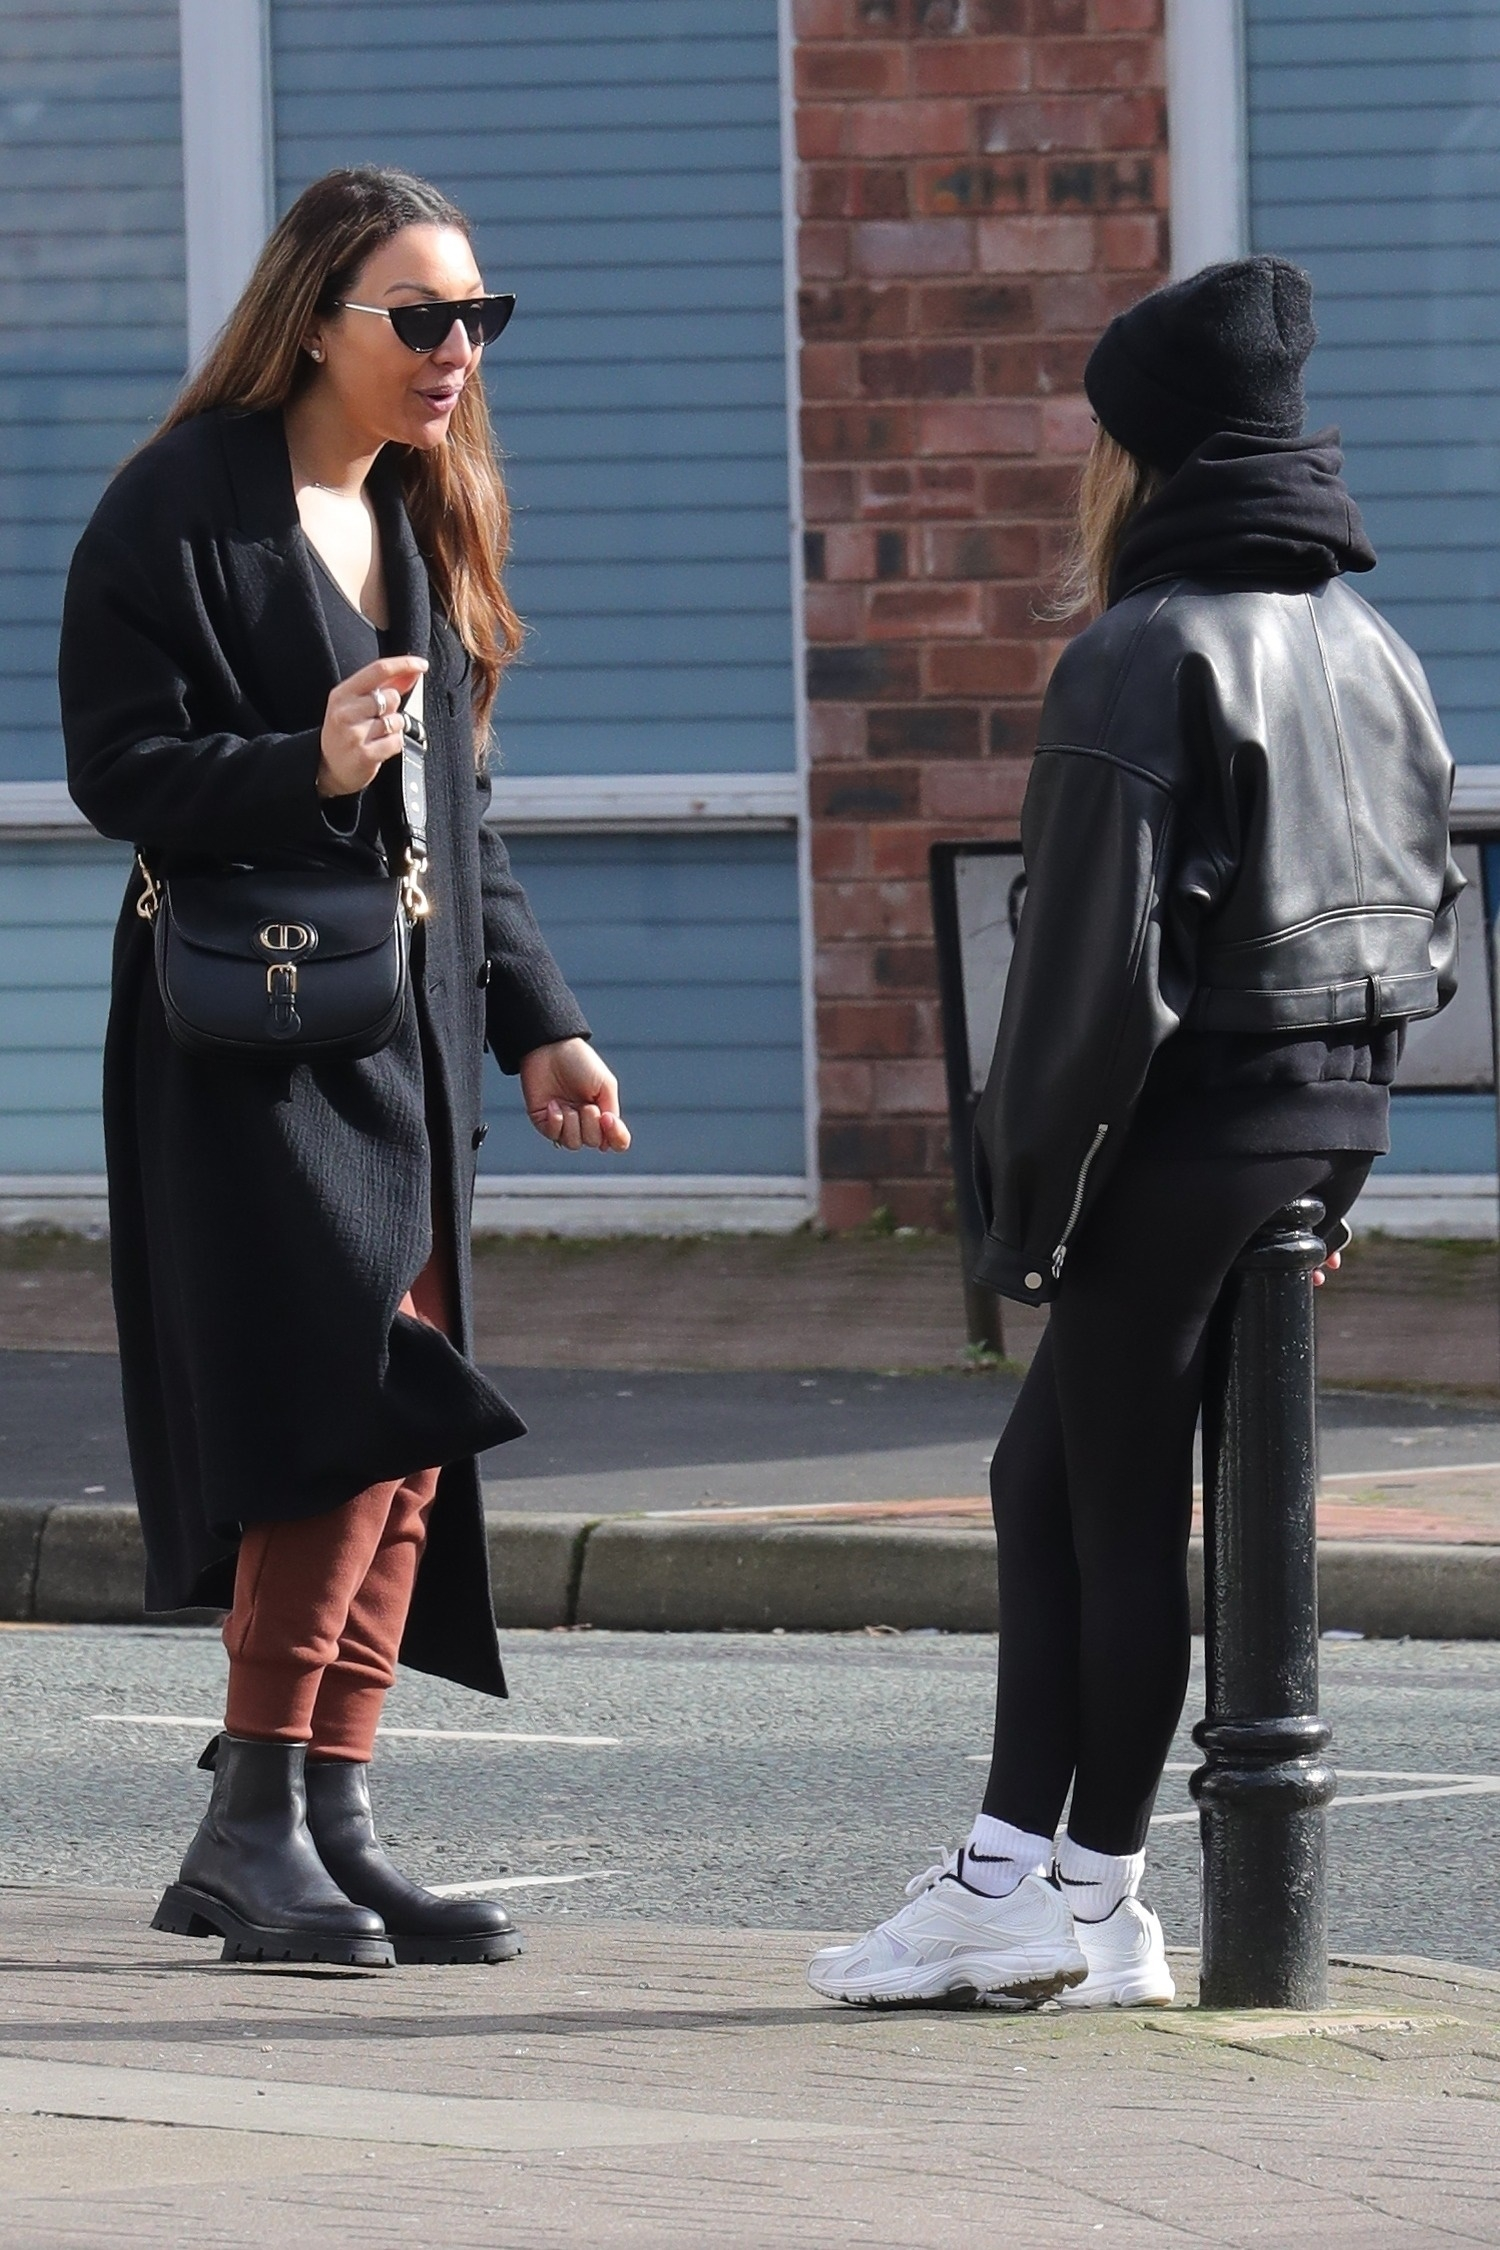 Kaya Hall and Anouska Santos - Seen while out for essentials in Hale Cheshire